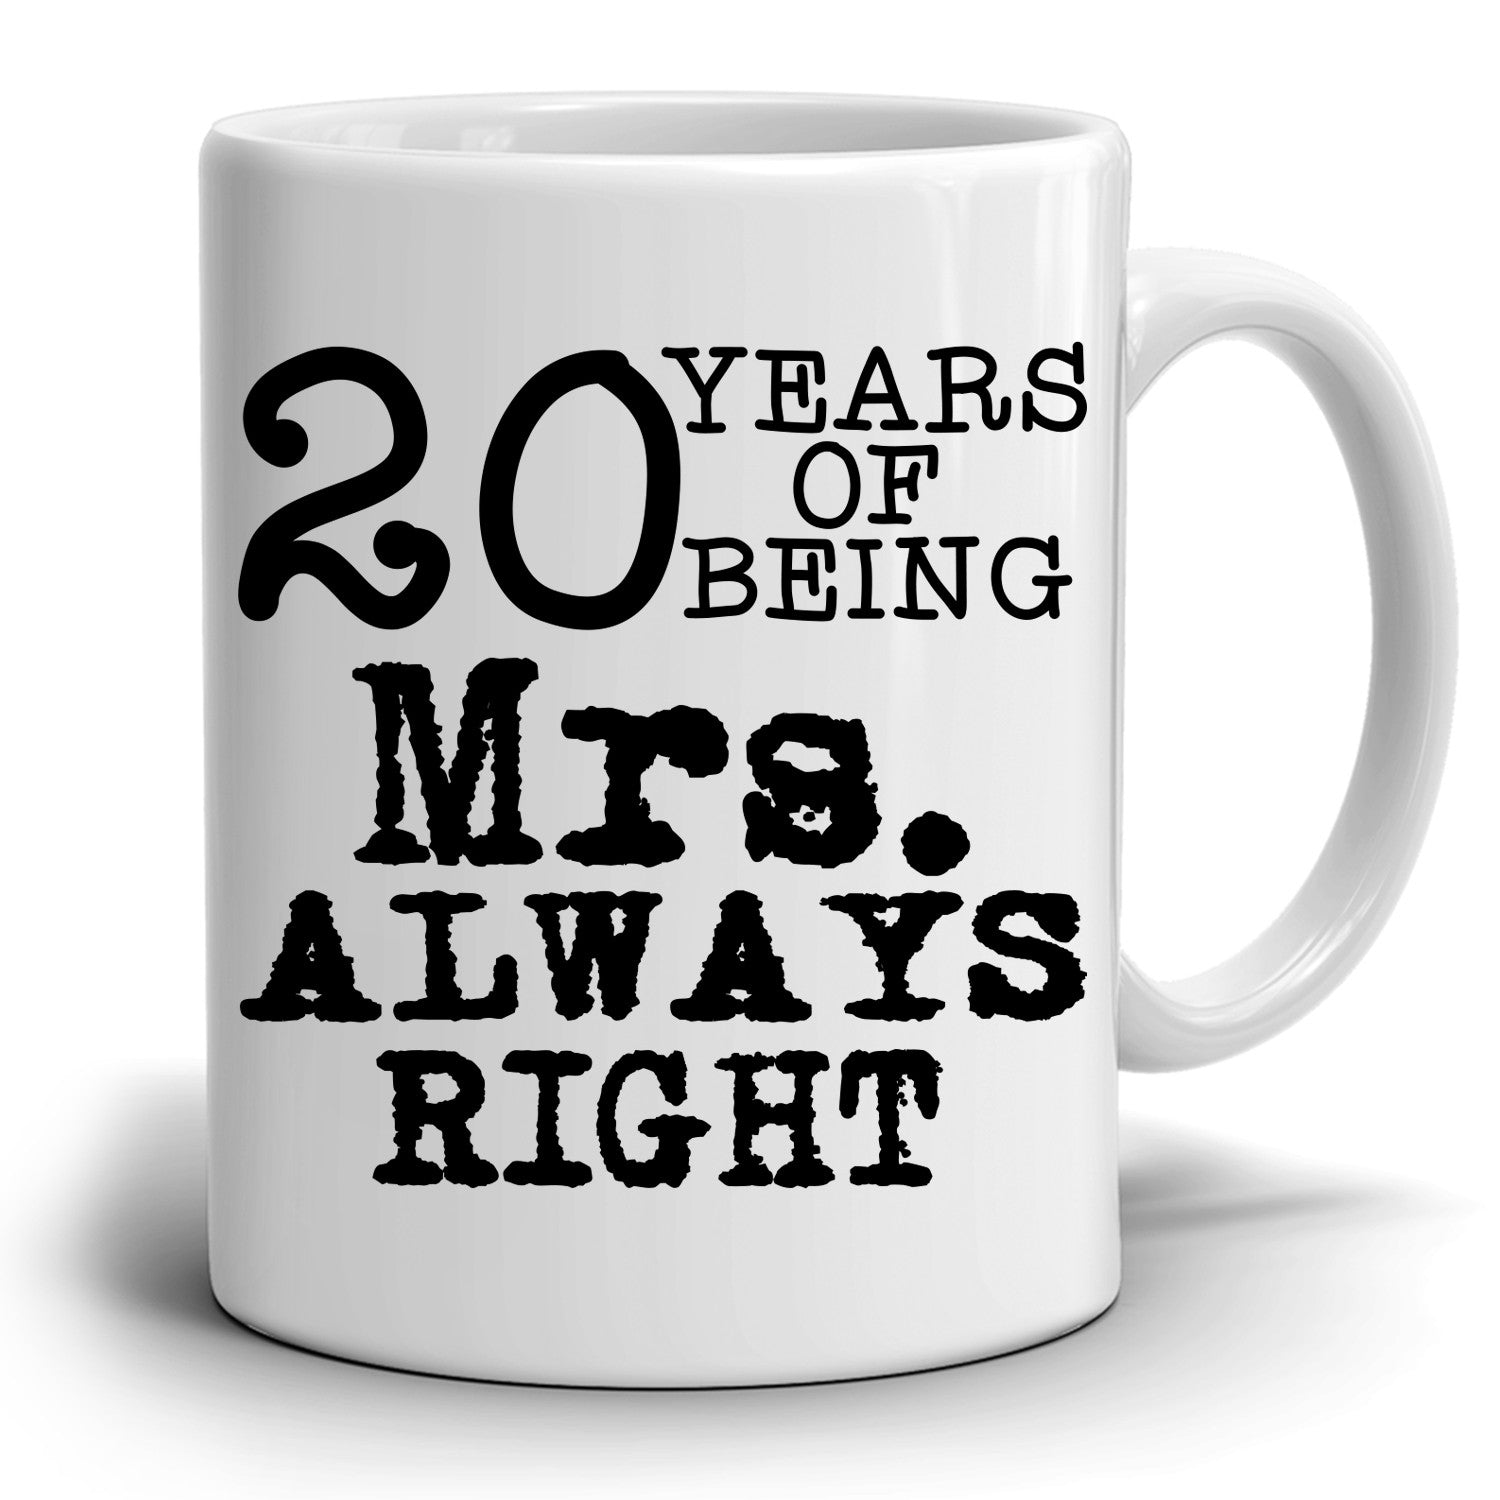 Unique Gifts For Husband On Wedding Day: Personalized Number Of Years Wedding Anniversary Couples